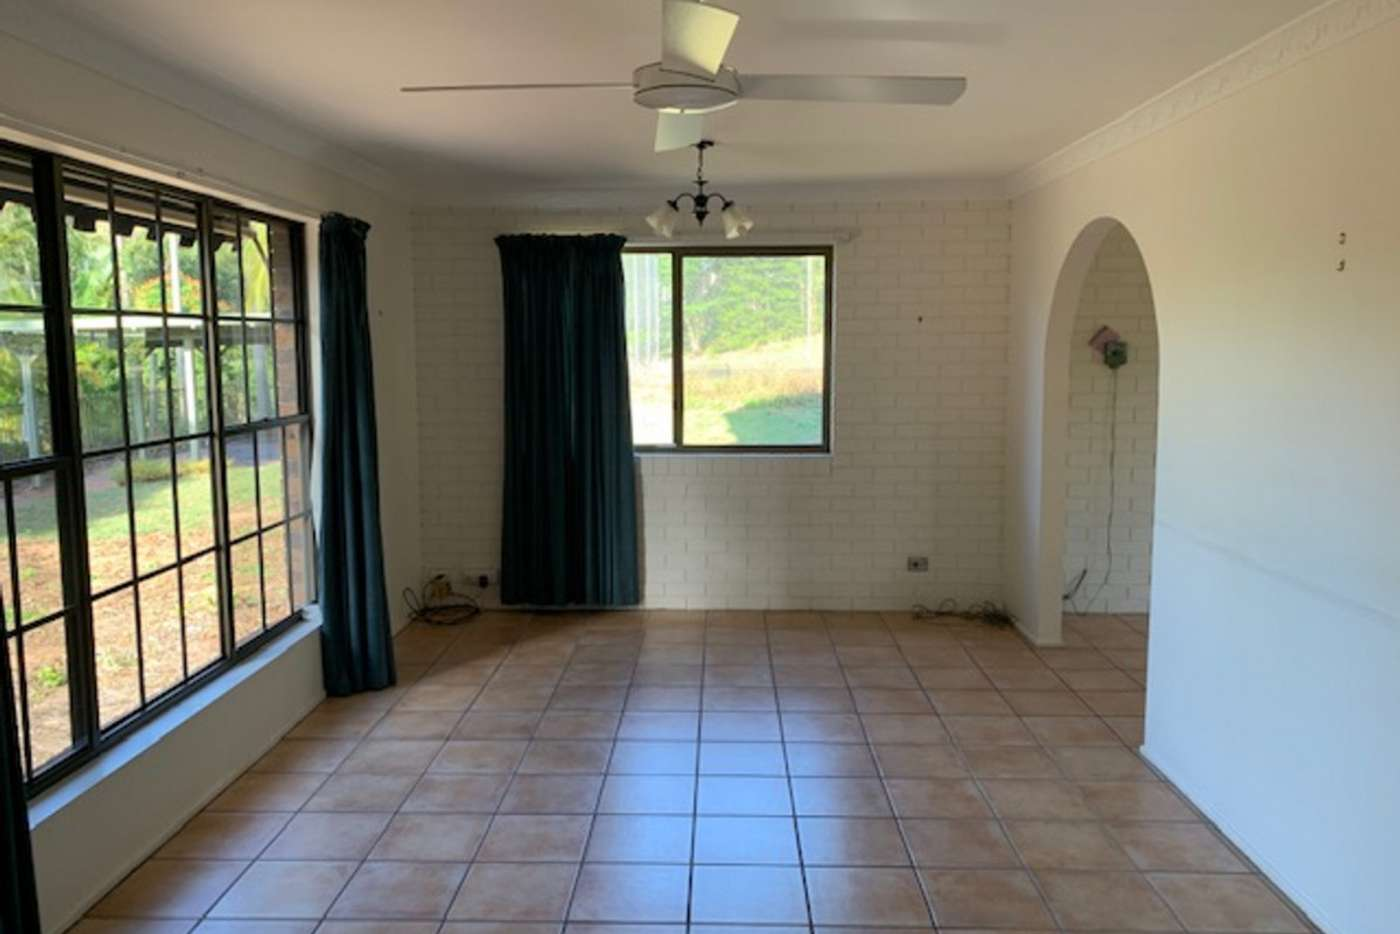 Fifth view of Homely house listing, 65 Elizabeth Street, Nambour QLD 4560